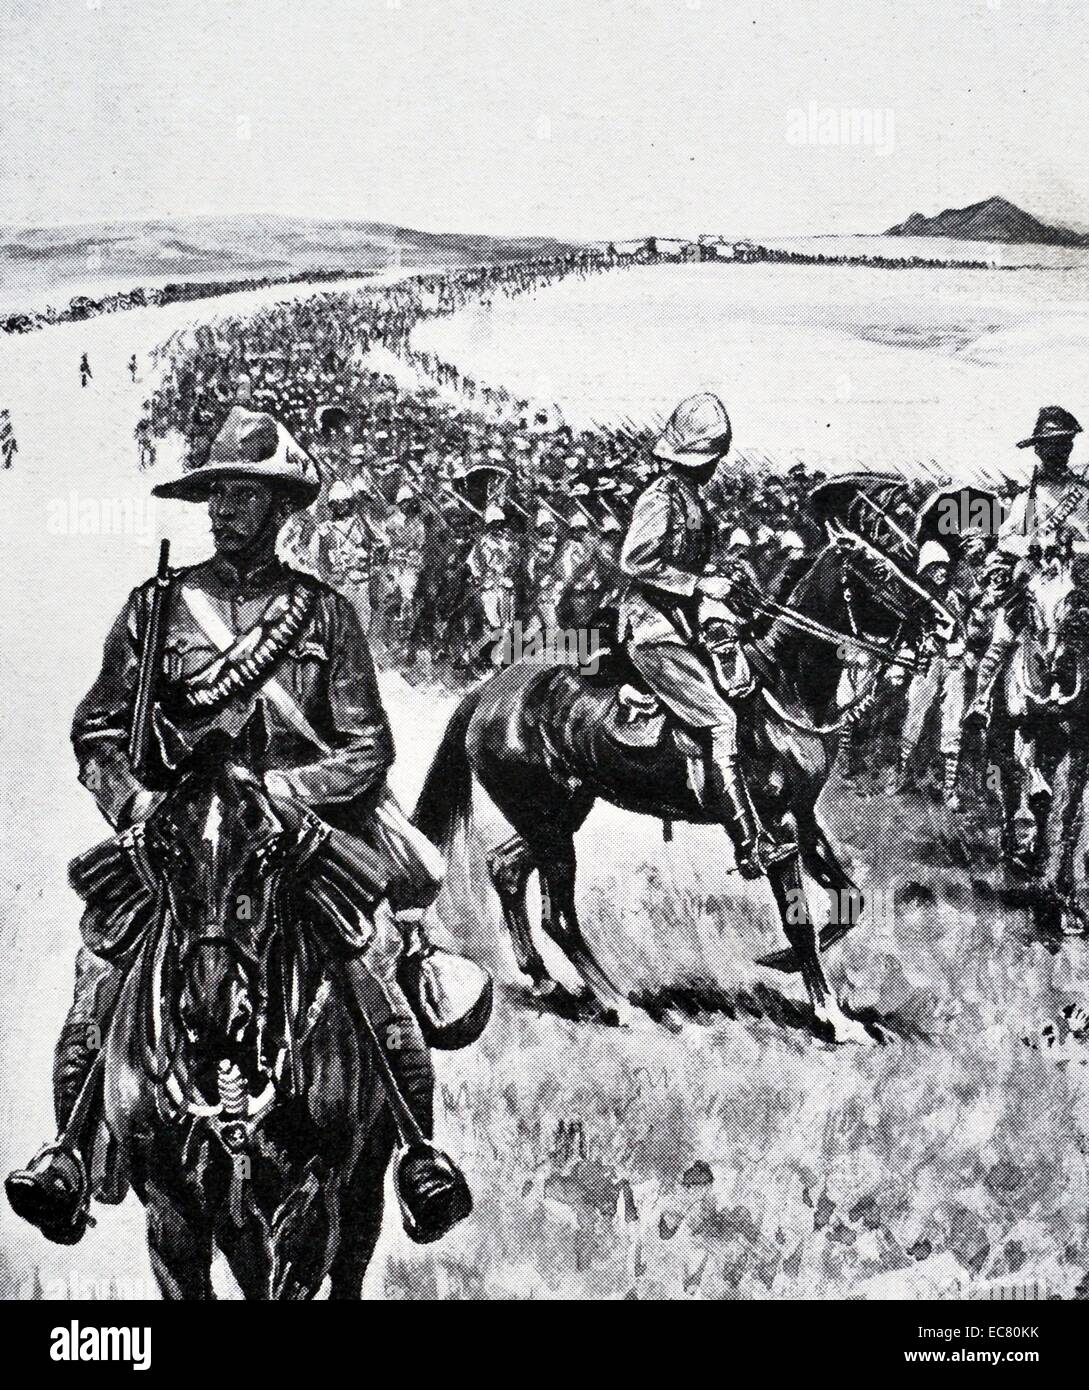 British forces march across the Veldt in South Africa during the Boer war - Stock Image